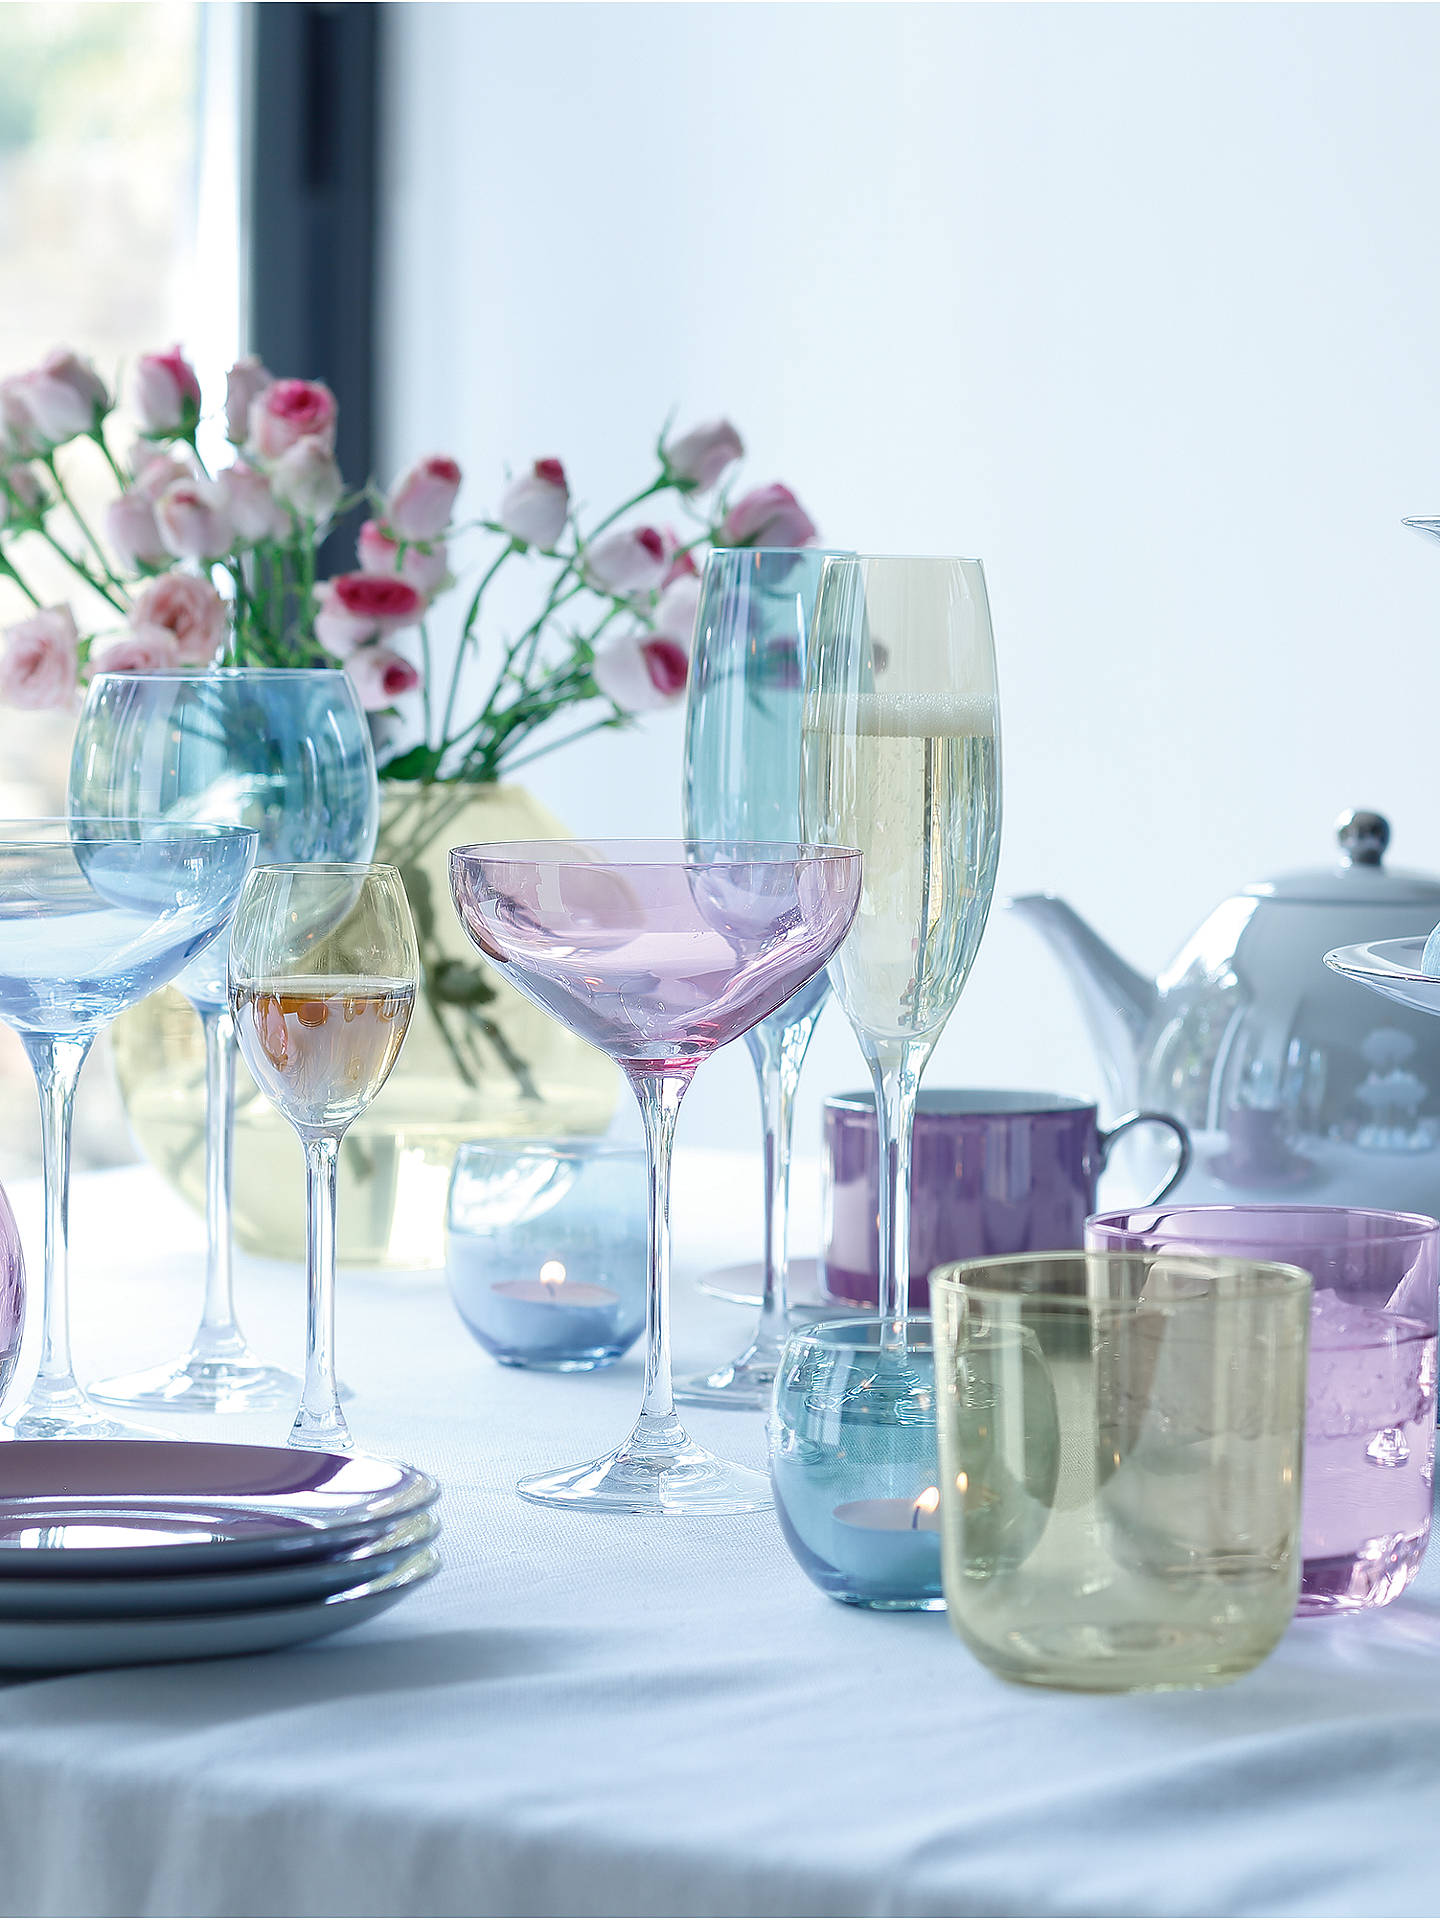 Buy LSA International Polka Pastel Wine Glasses, 0.4L, Set of 4 Online at johnlewis.com